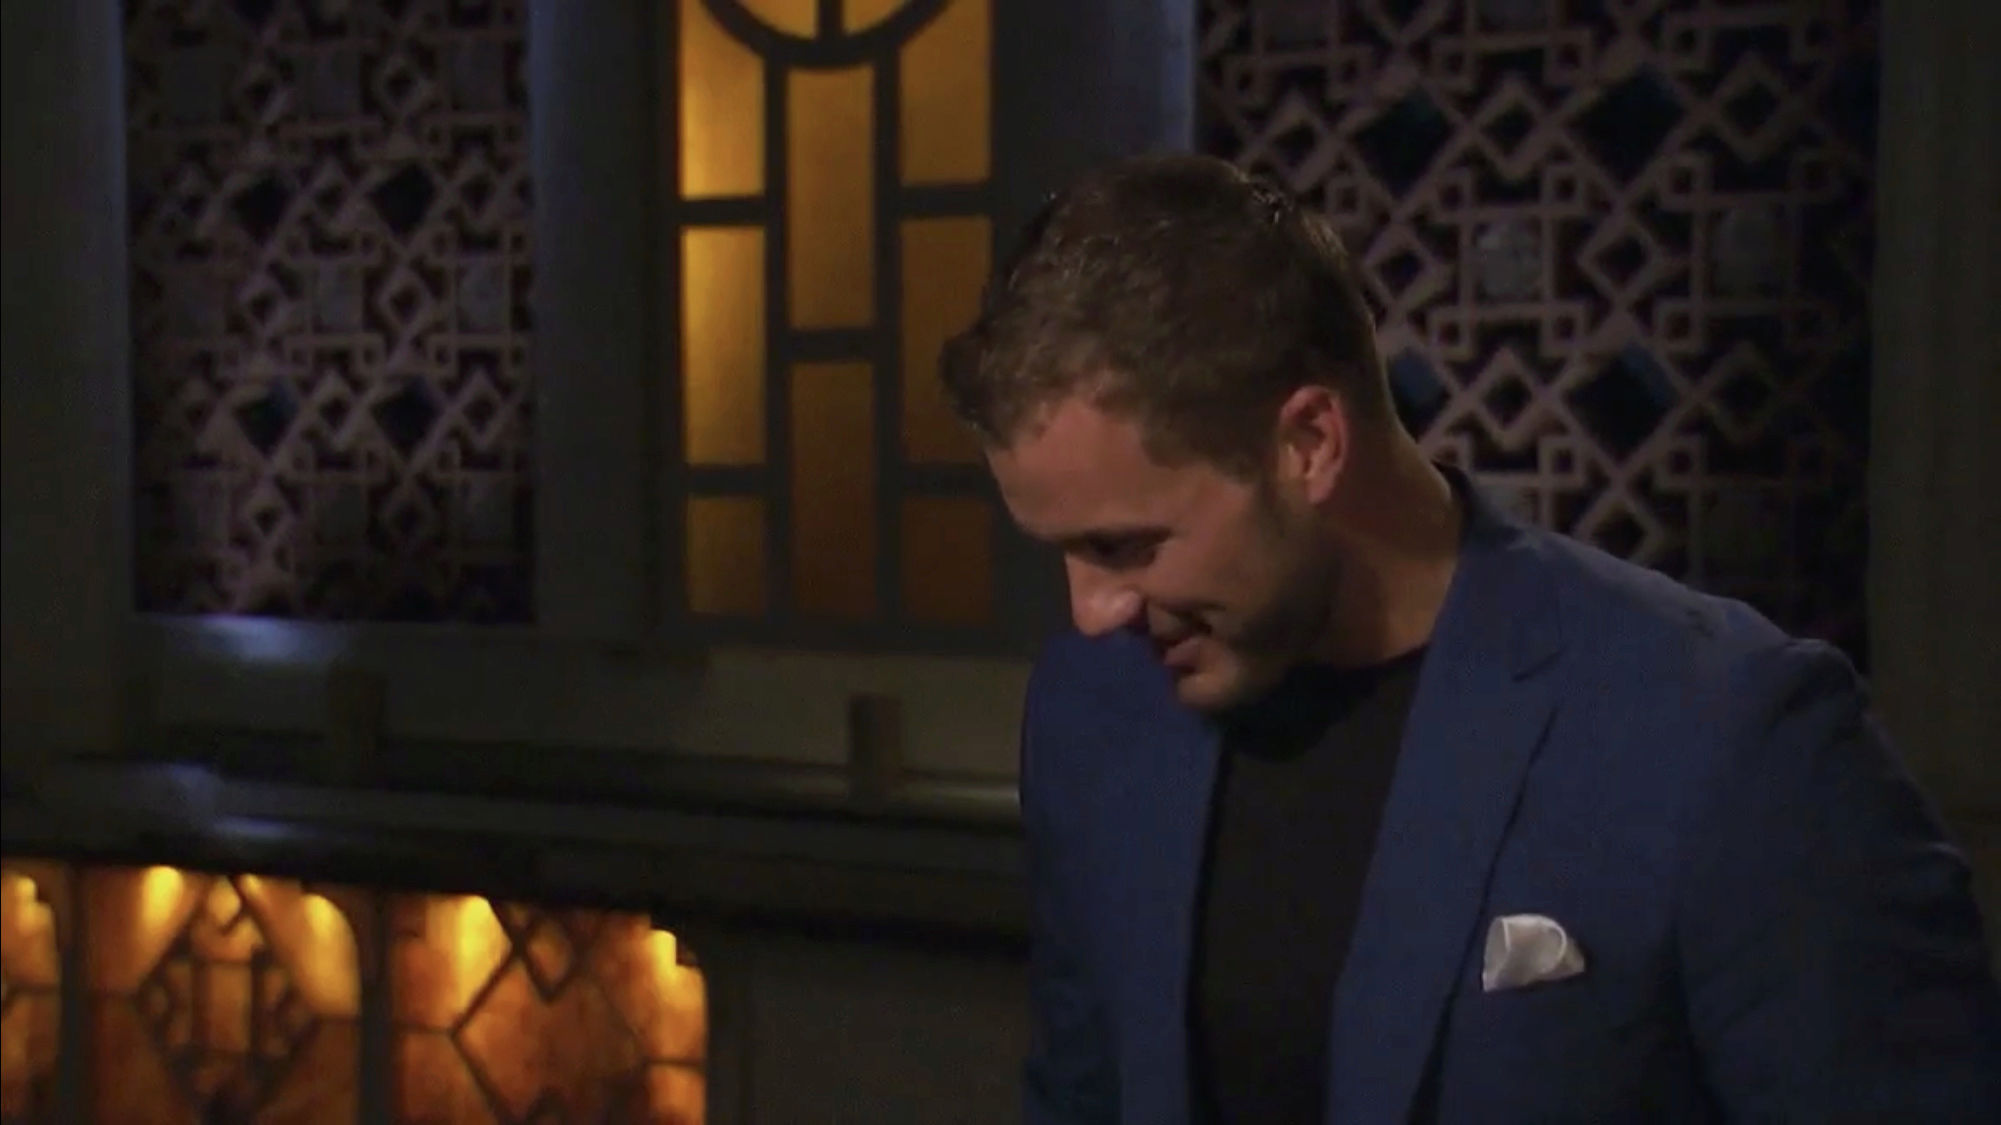 Bachelorette 14 - Becca Kufrin - ScreenCaps - NO Discussion - *Sleuthing Spoilers* 36ad4810